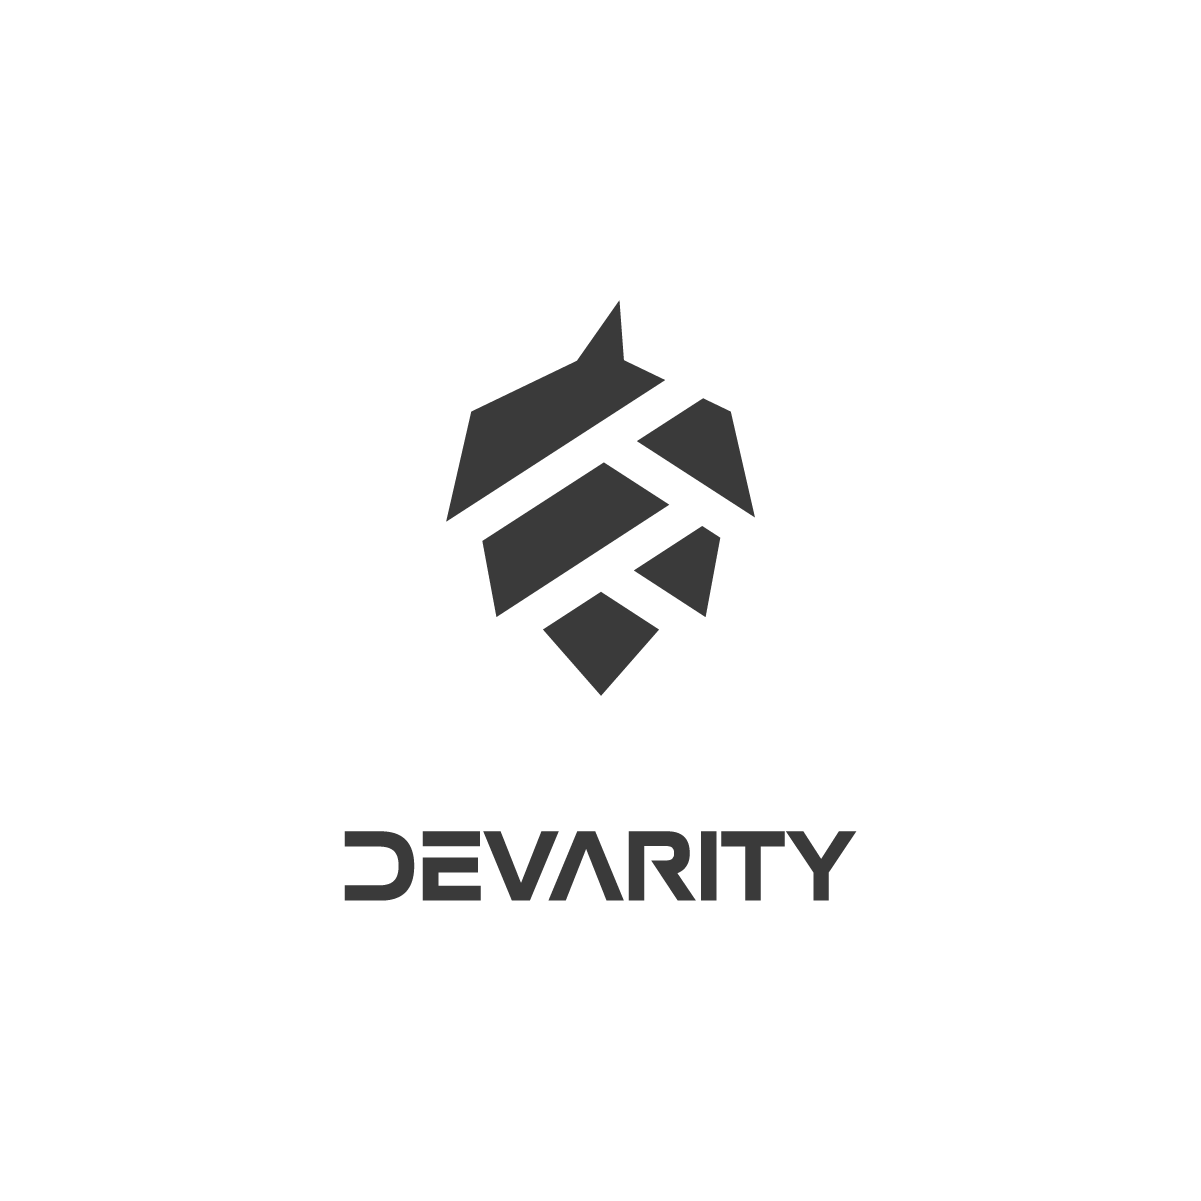 Devarity Small